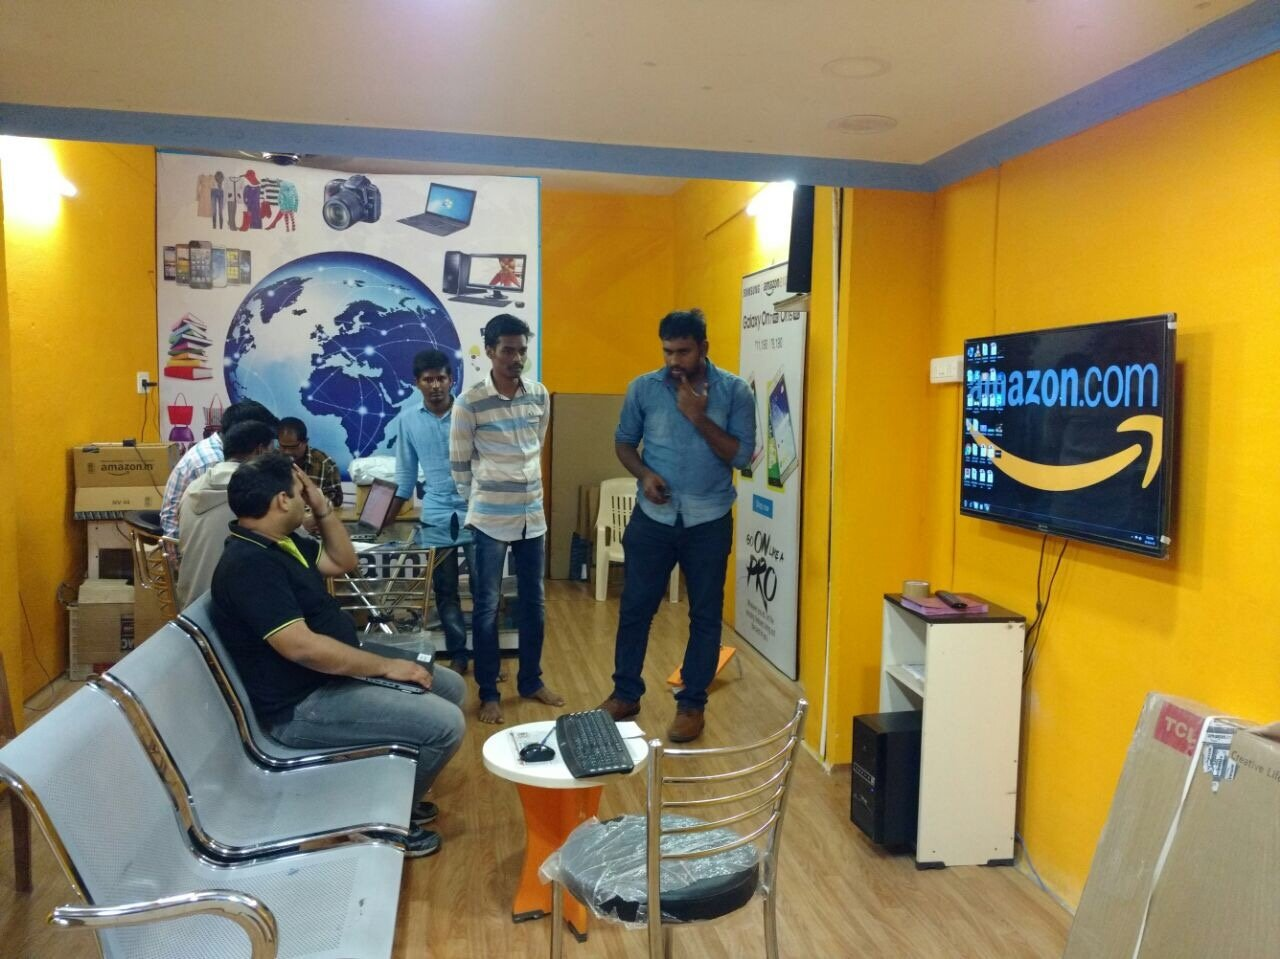 Sensational What Are Some Small Scale Business Ideas In India Quora Interior Design Ideas Greaswefileorg